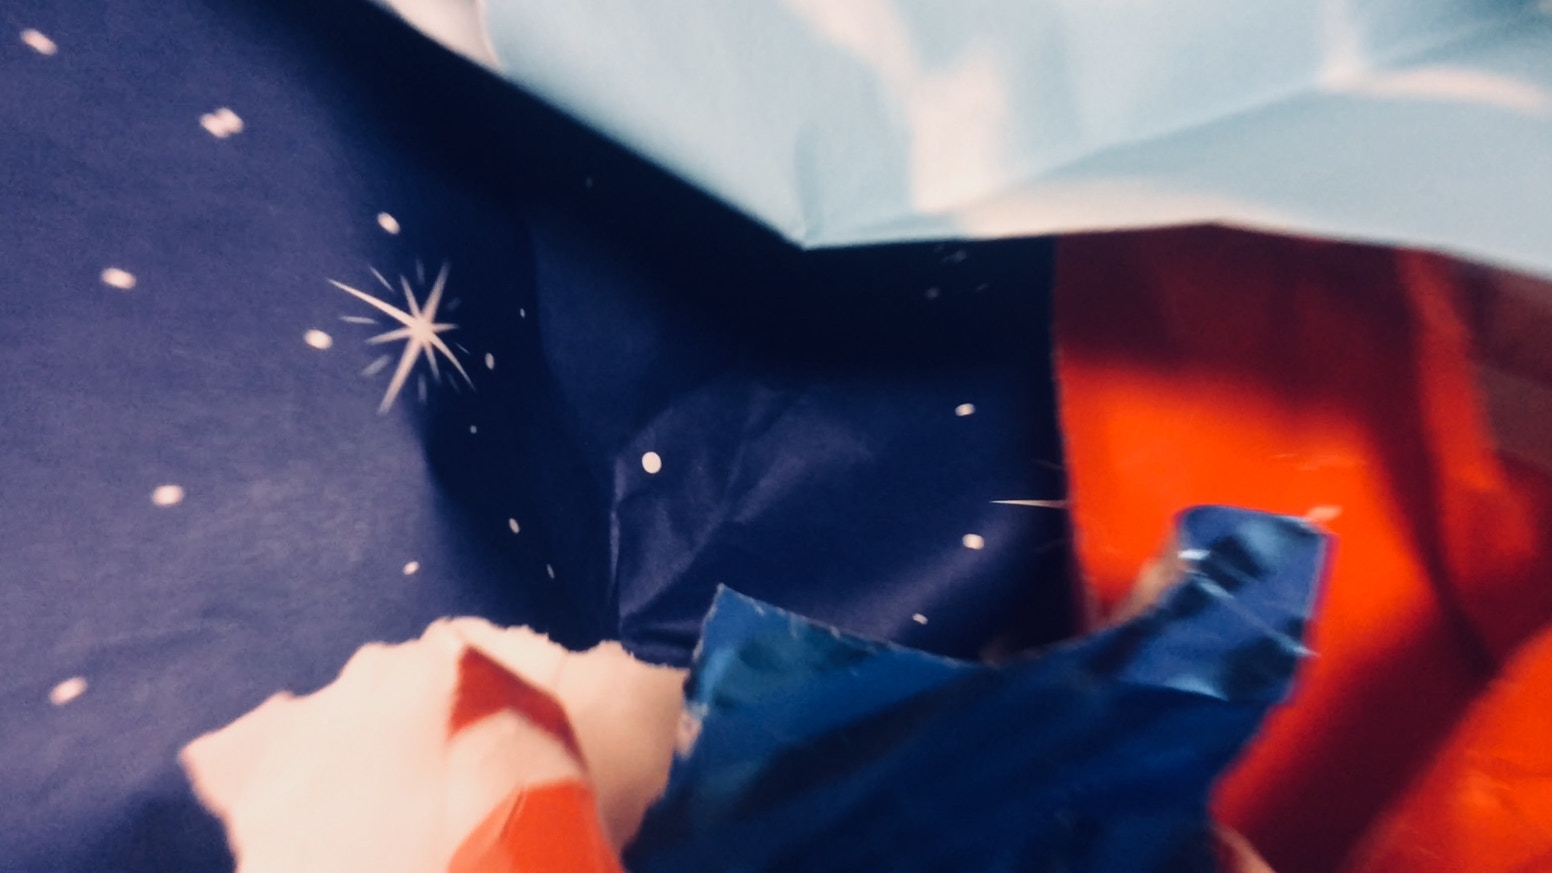 Cosmic Christmas - A Meditative Take on Holiday Music by Davy Bui ...